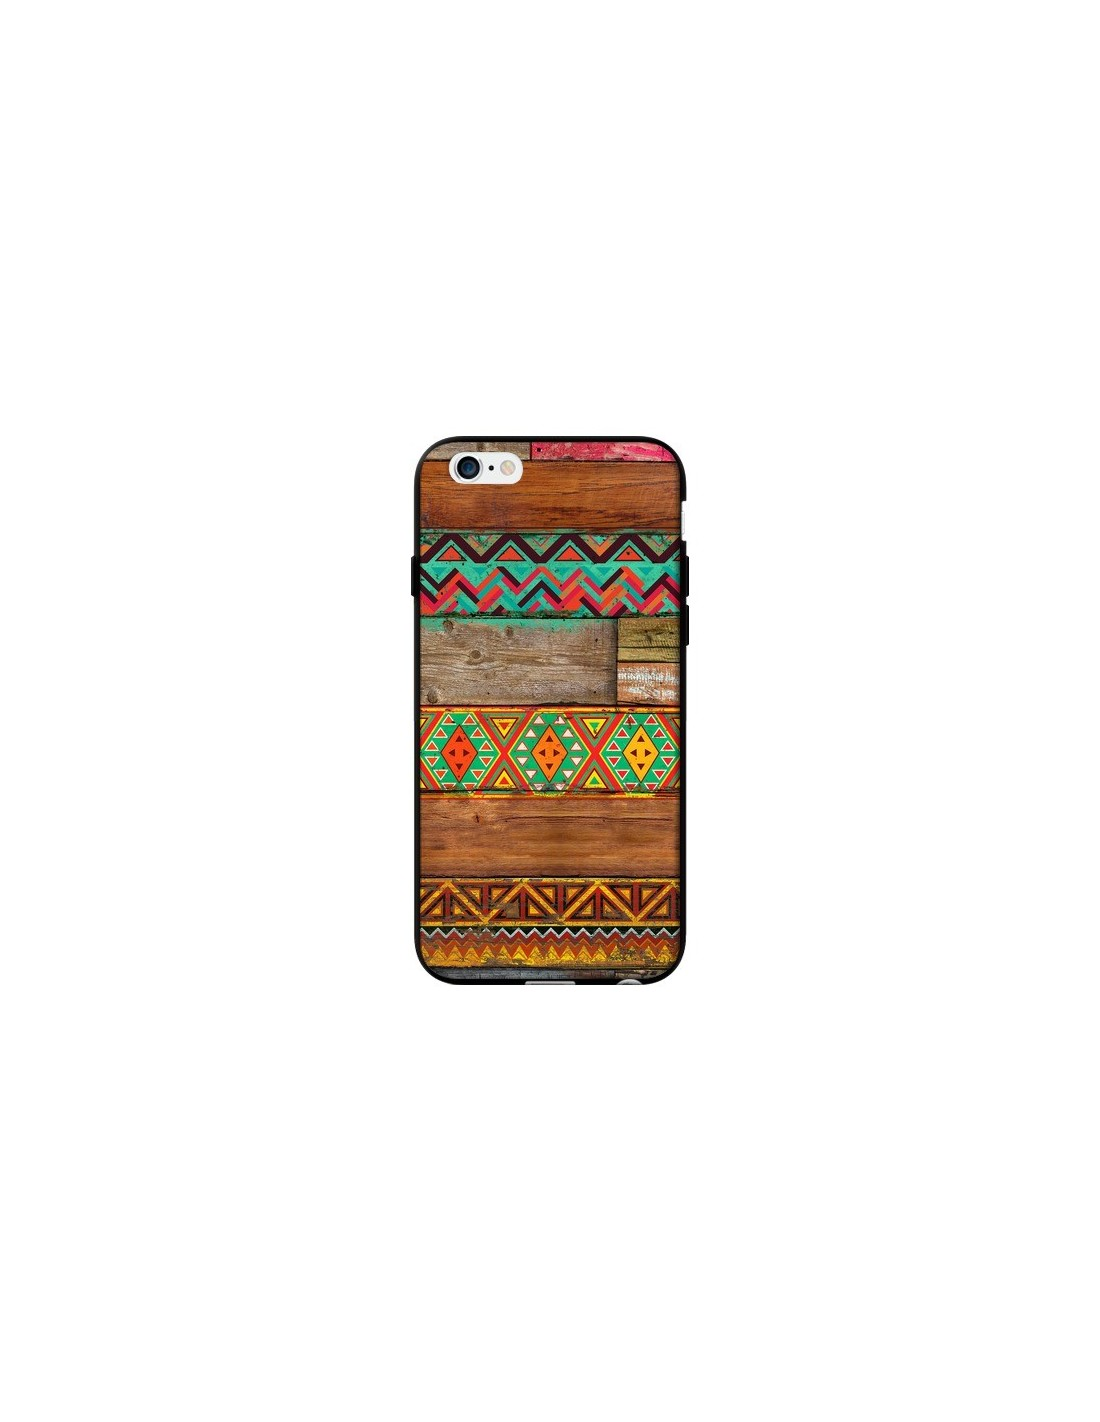 coque indian wood bois azteque pour iphone 6 et 6s maximilian san. Black Bedroom Furniture Sets. Home Design Ideas